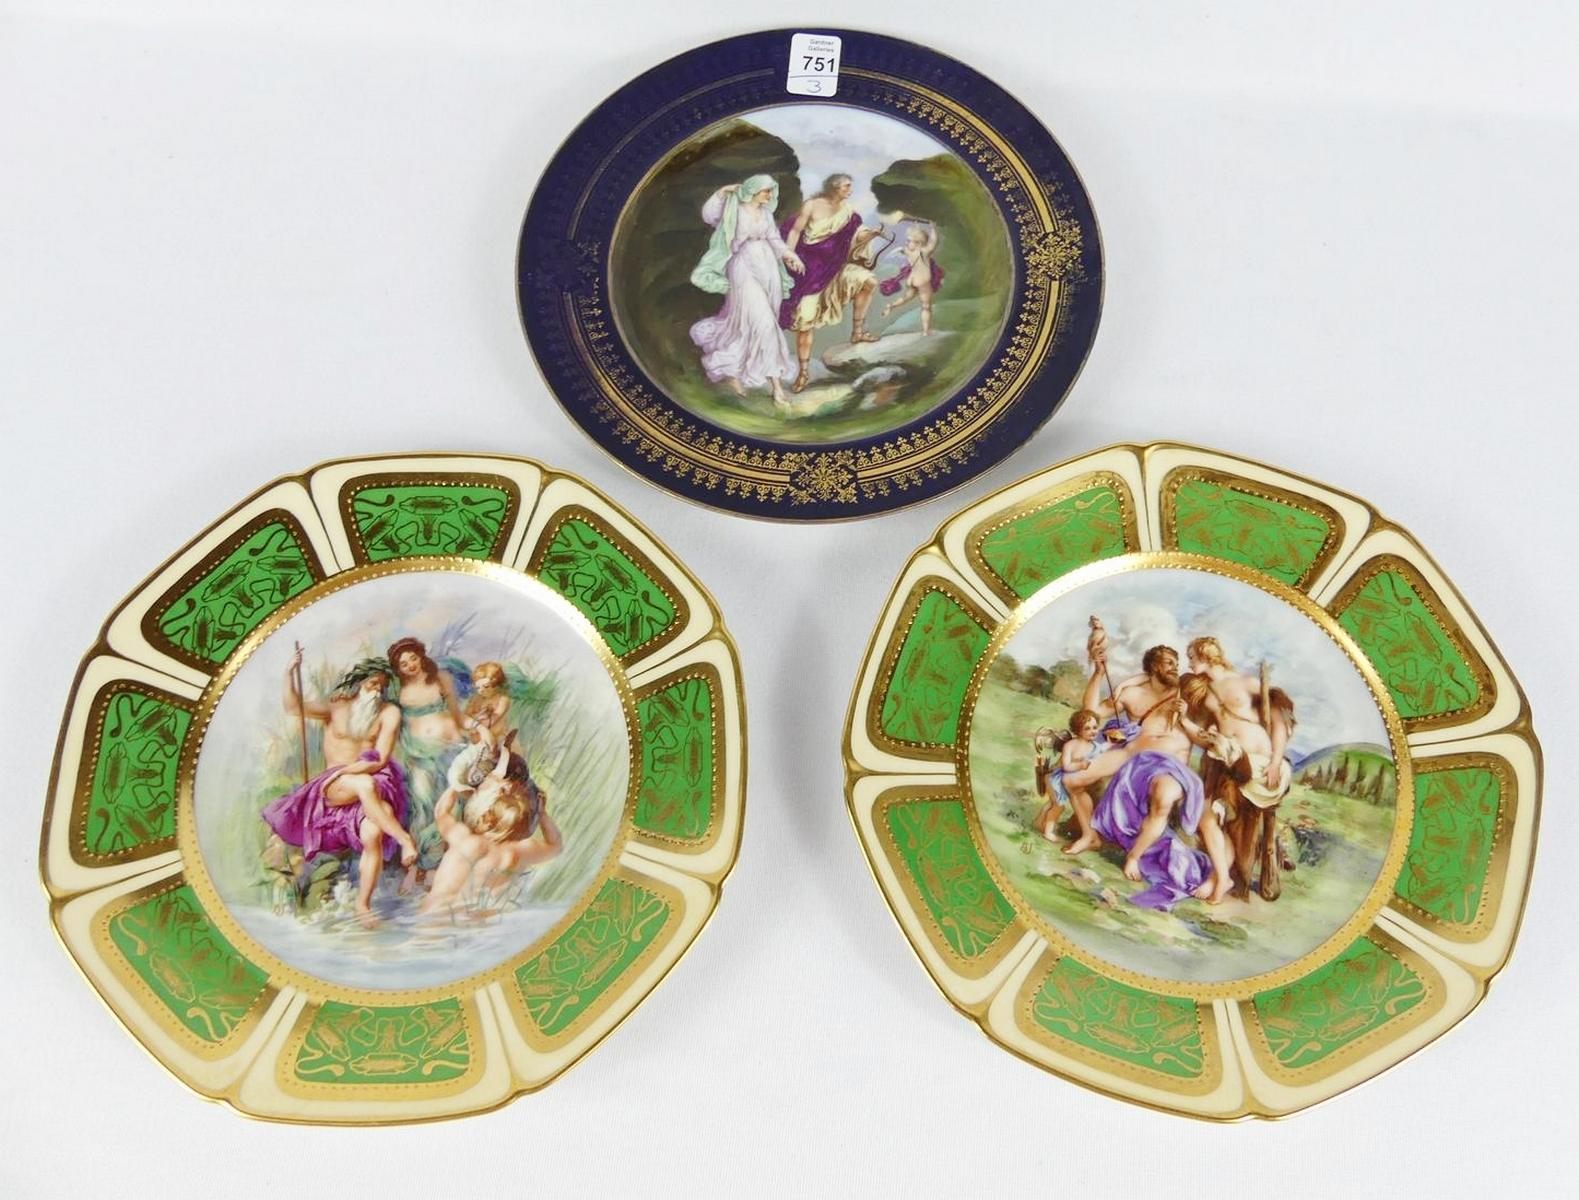 THREE PORCELAIN PLATES